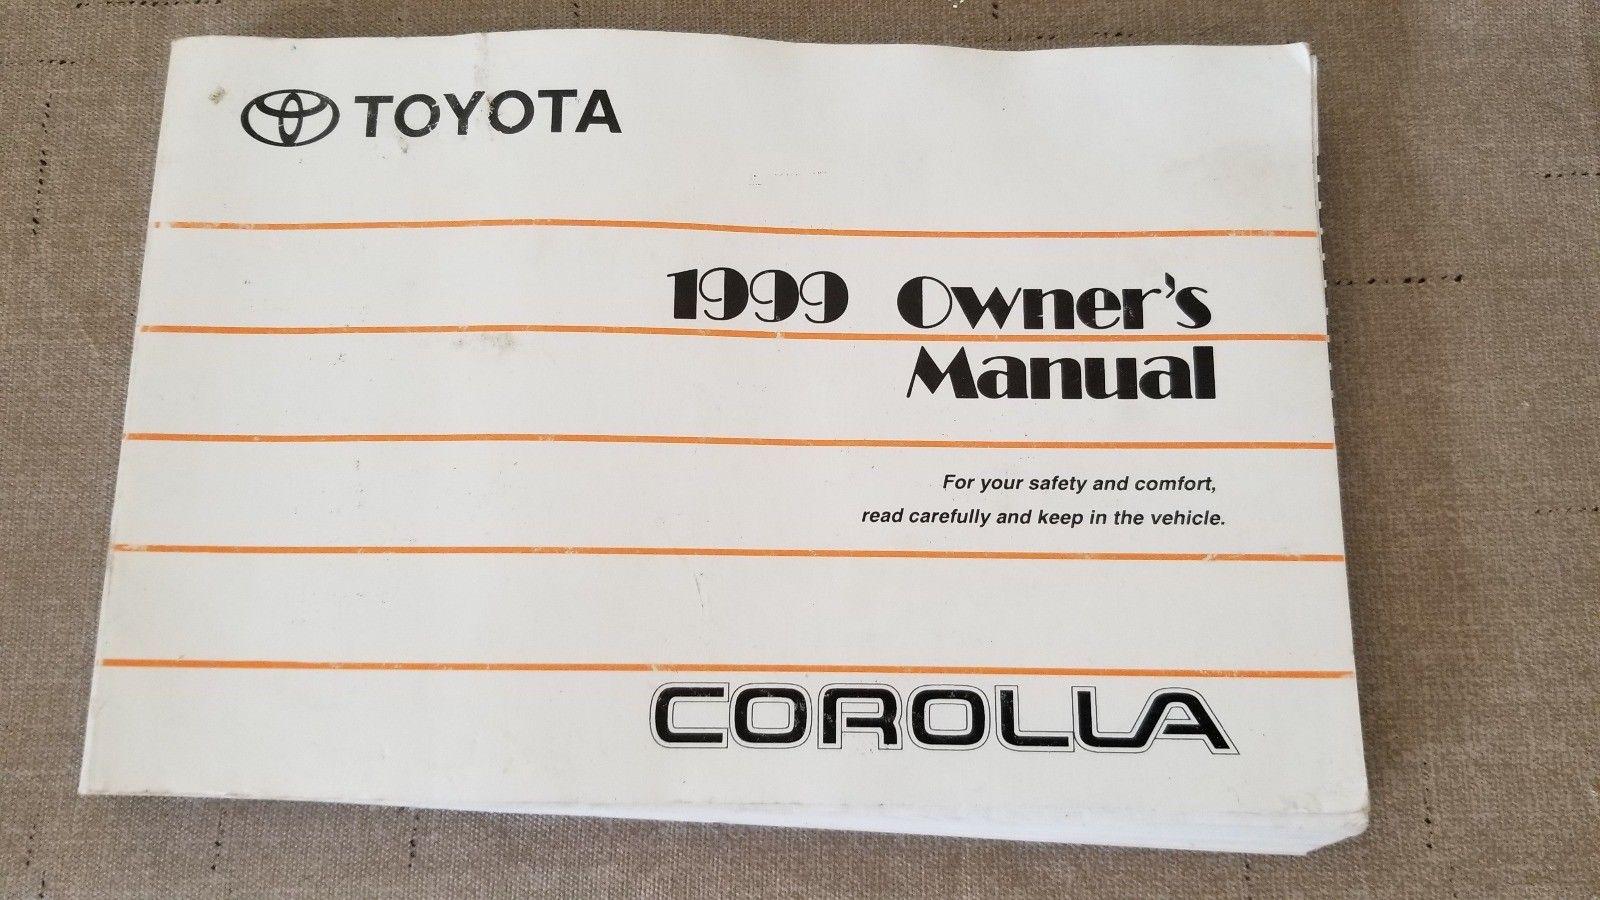 Toyota Corolla Owners Manual: Engine